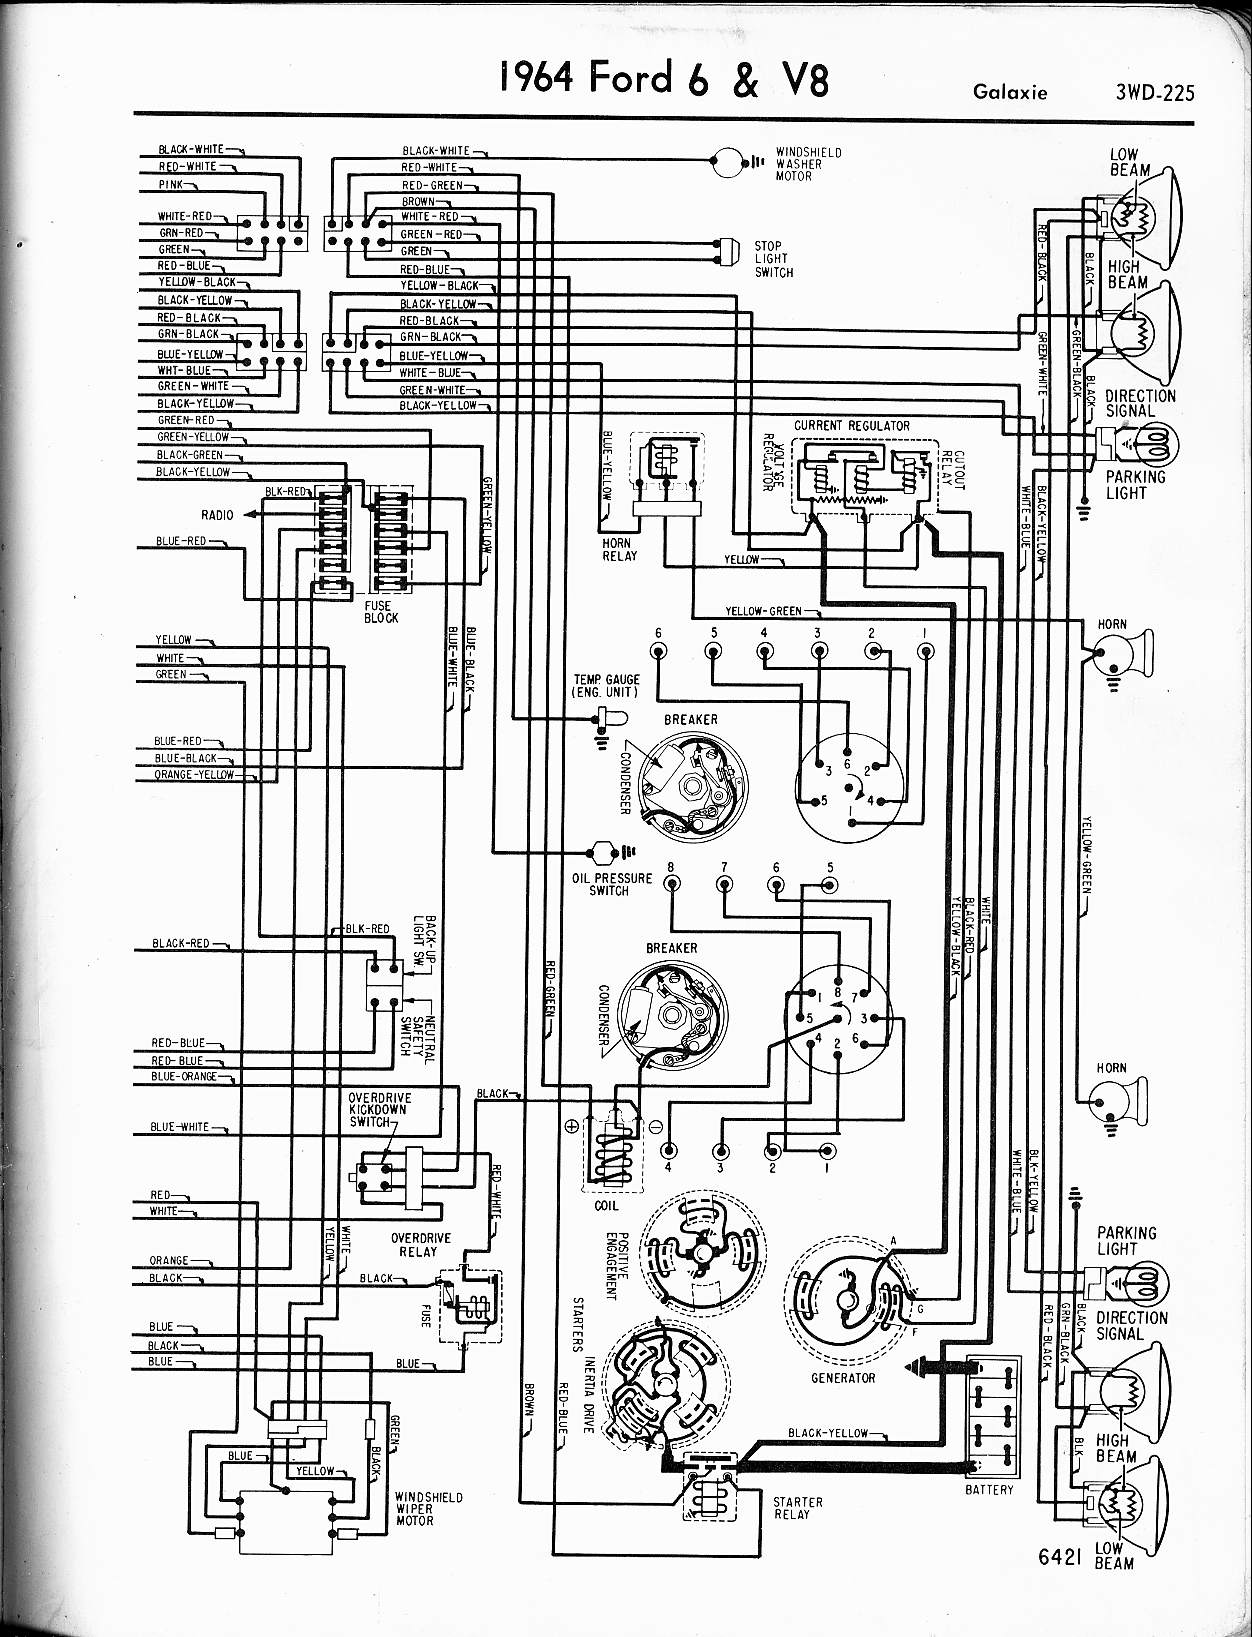 1964 ford wiring diagram data wiring diagram update1964 ford wiring diagram